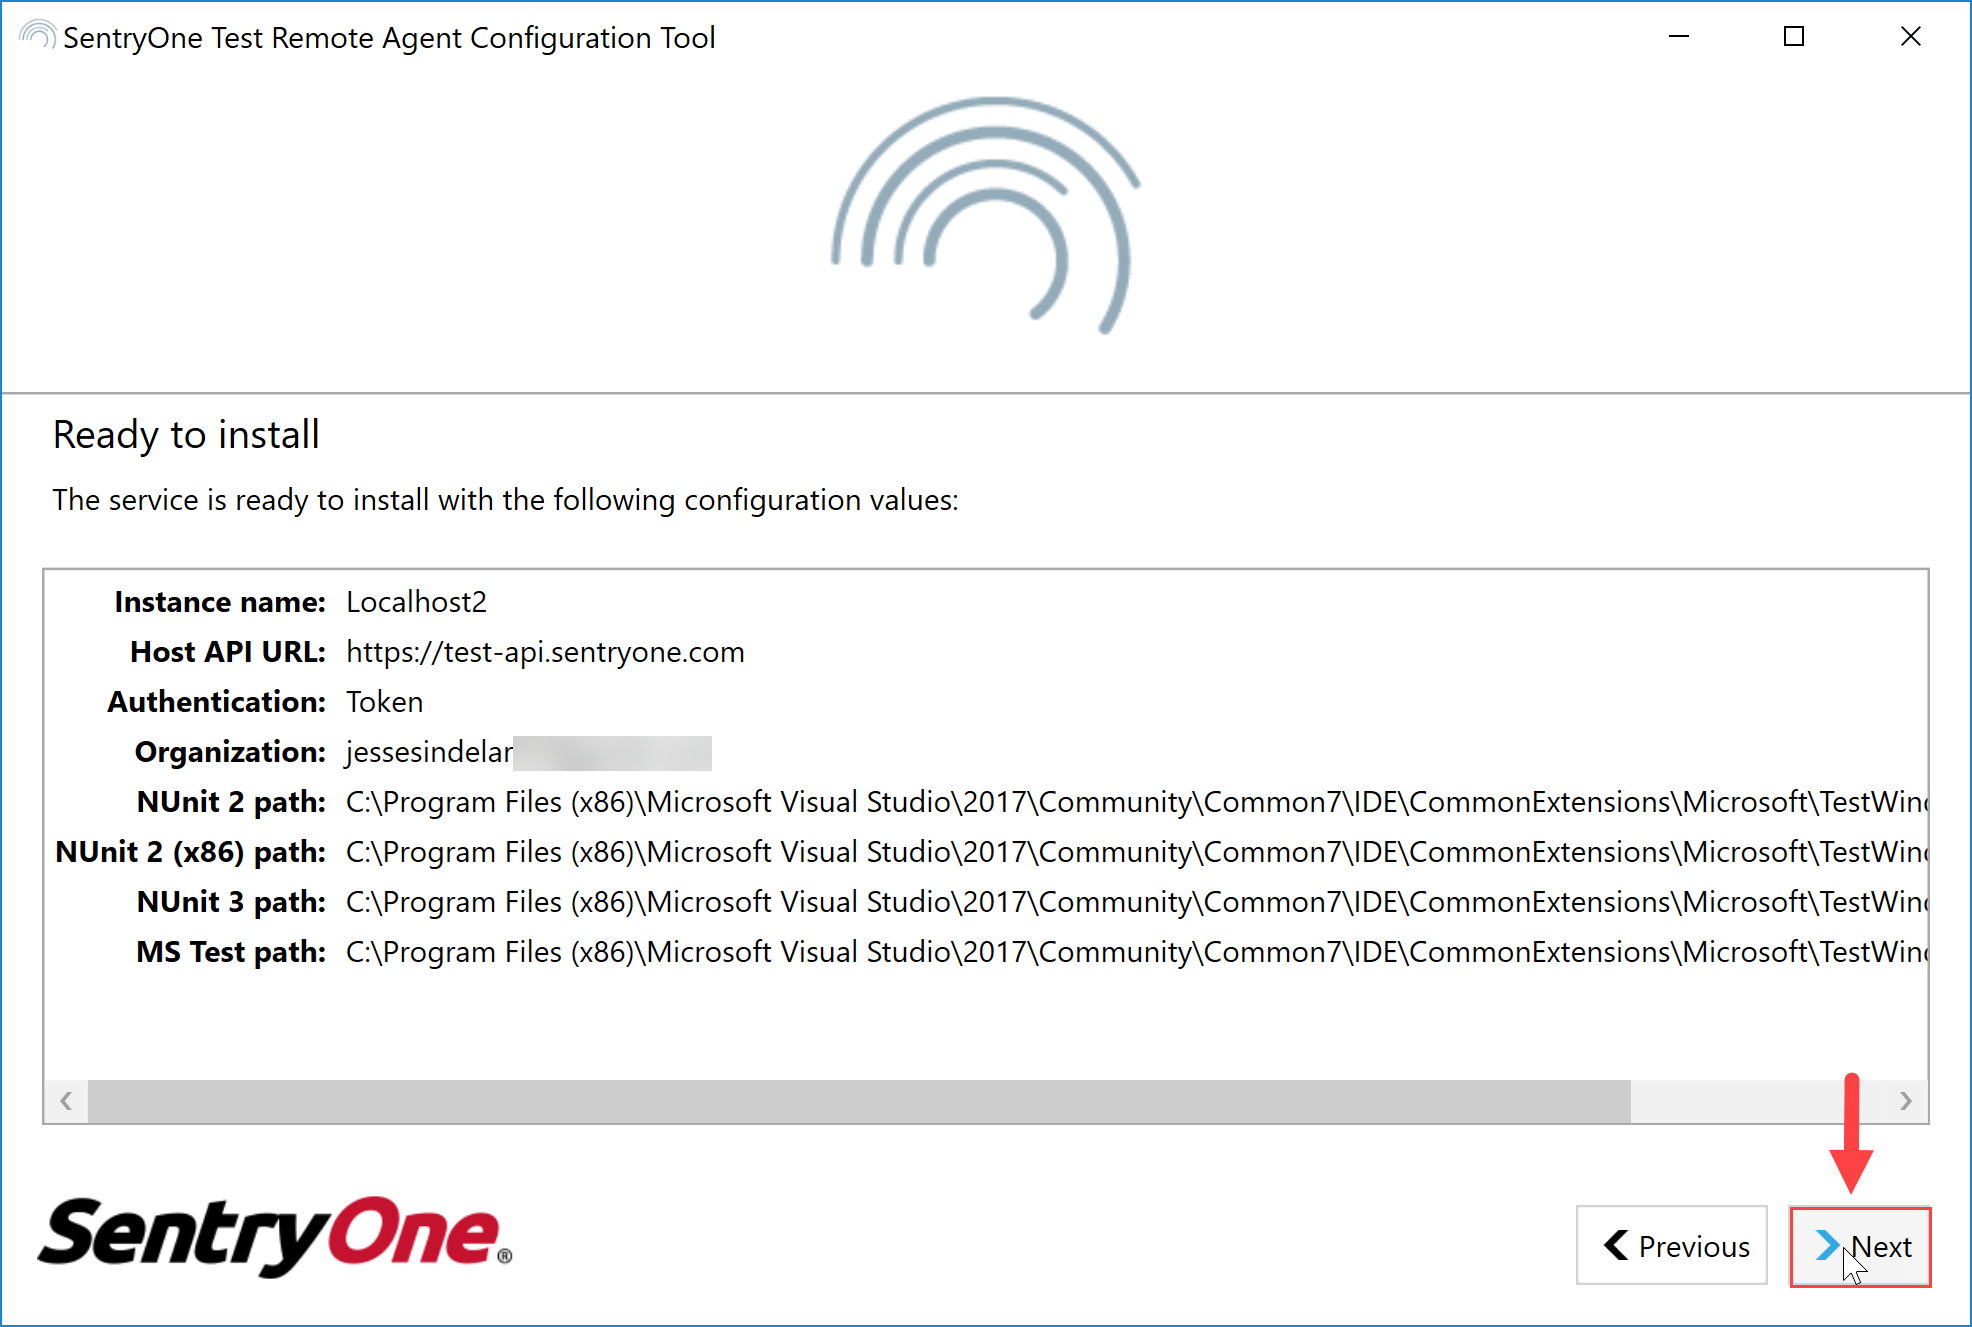 SentryOne Test Remote Agent Configuration Tool Ready to Install